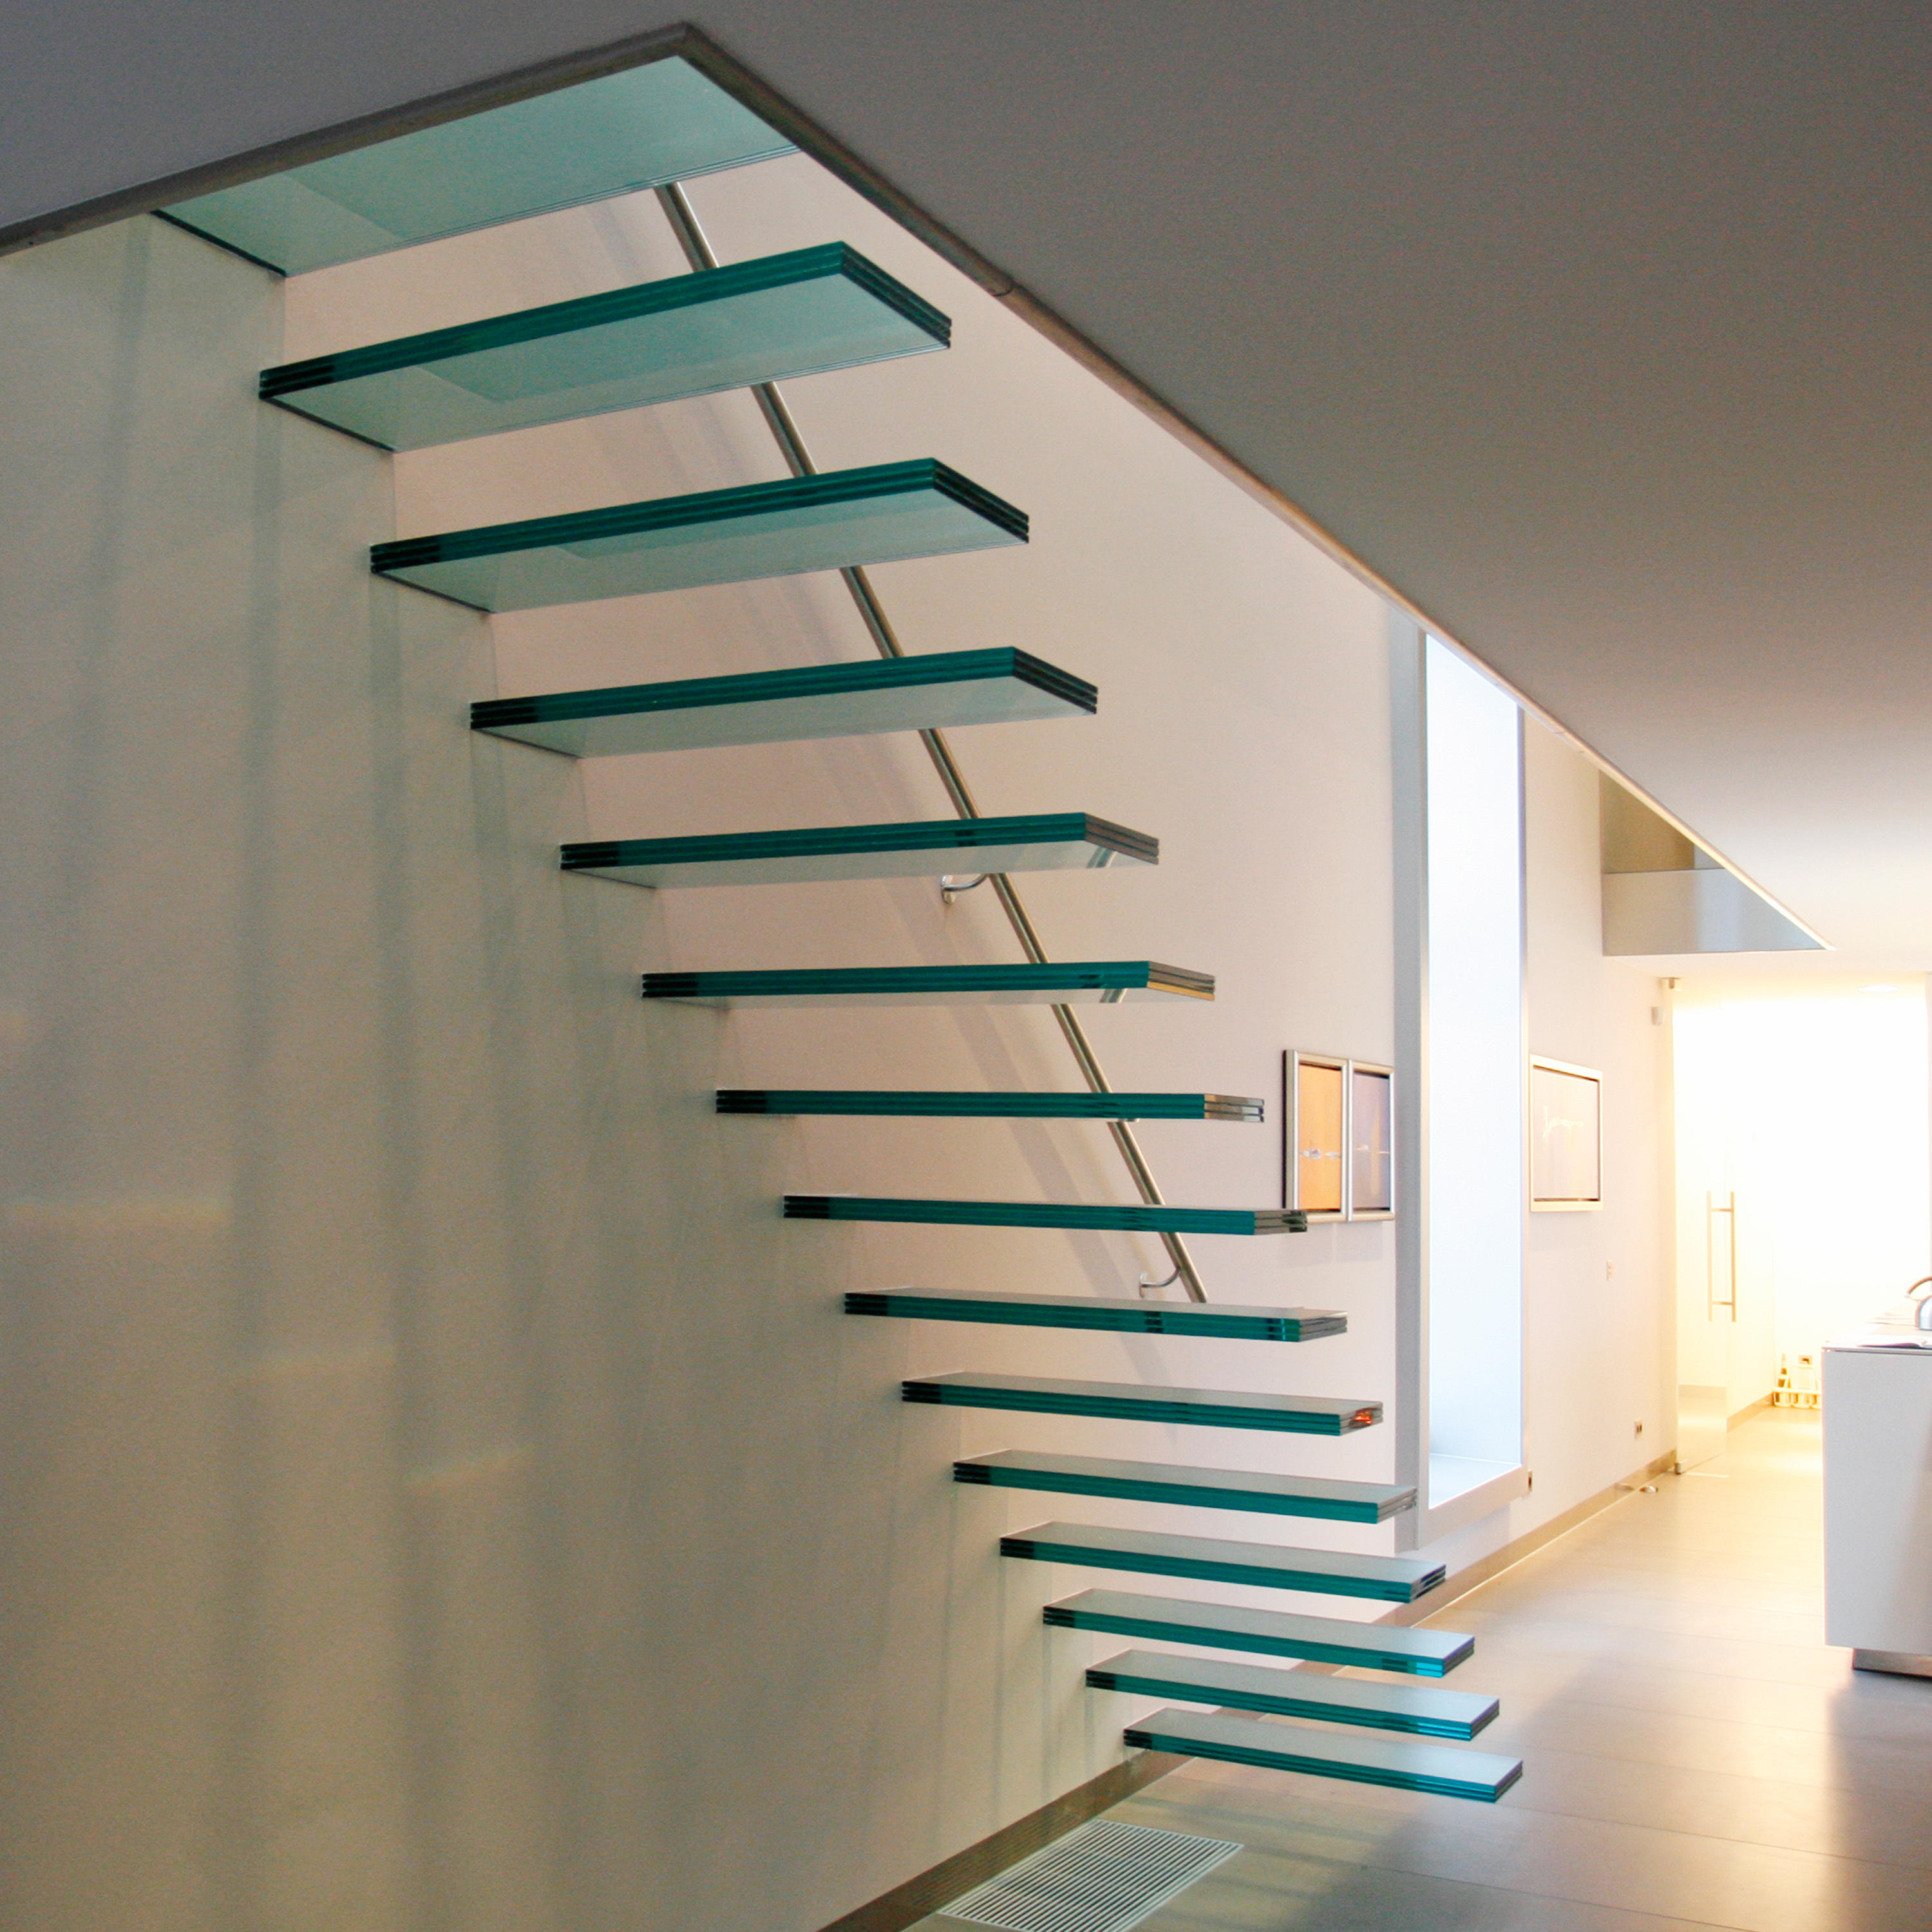 Floating | Straight Stairs Glass TRE 474 By EeStairs | Glass Stairs ...